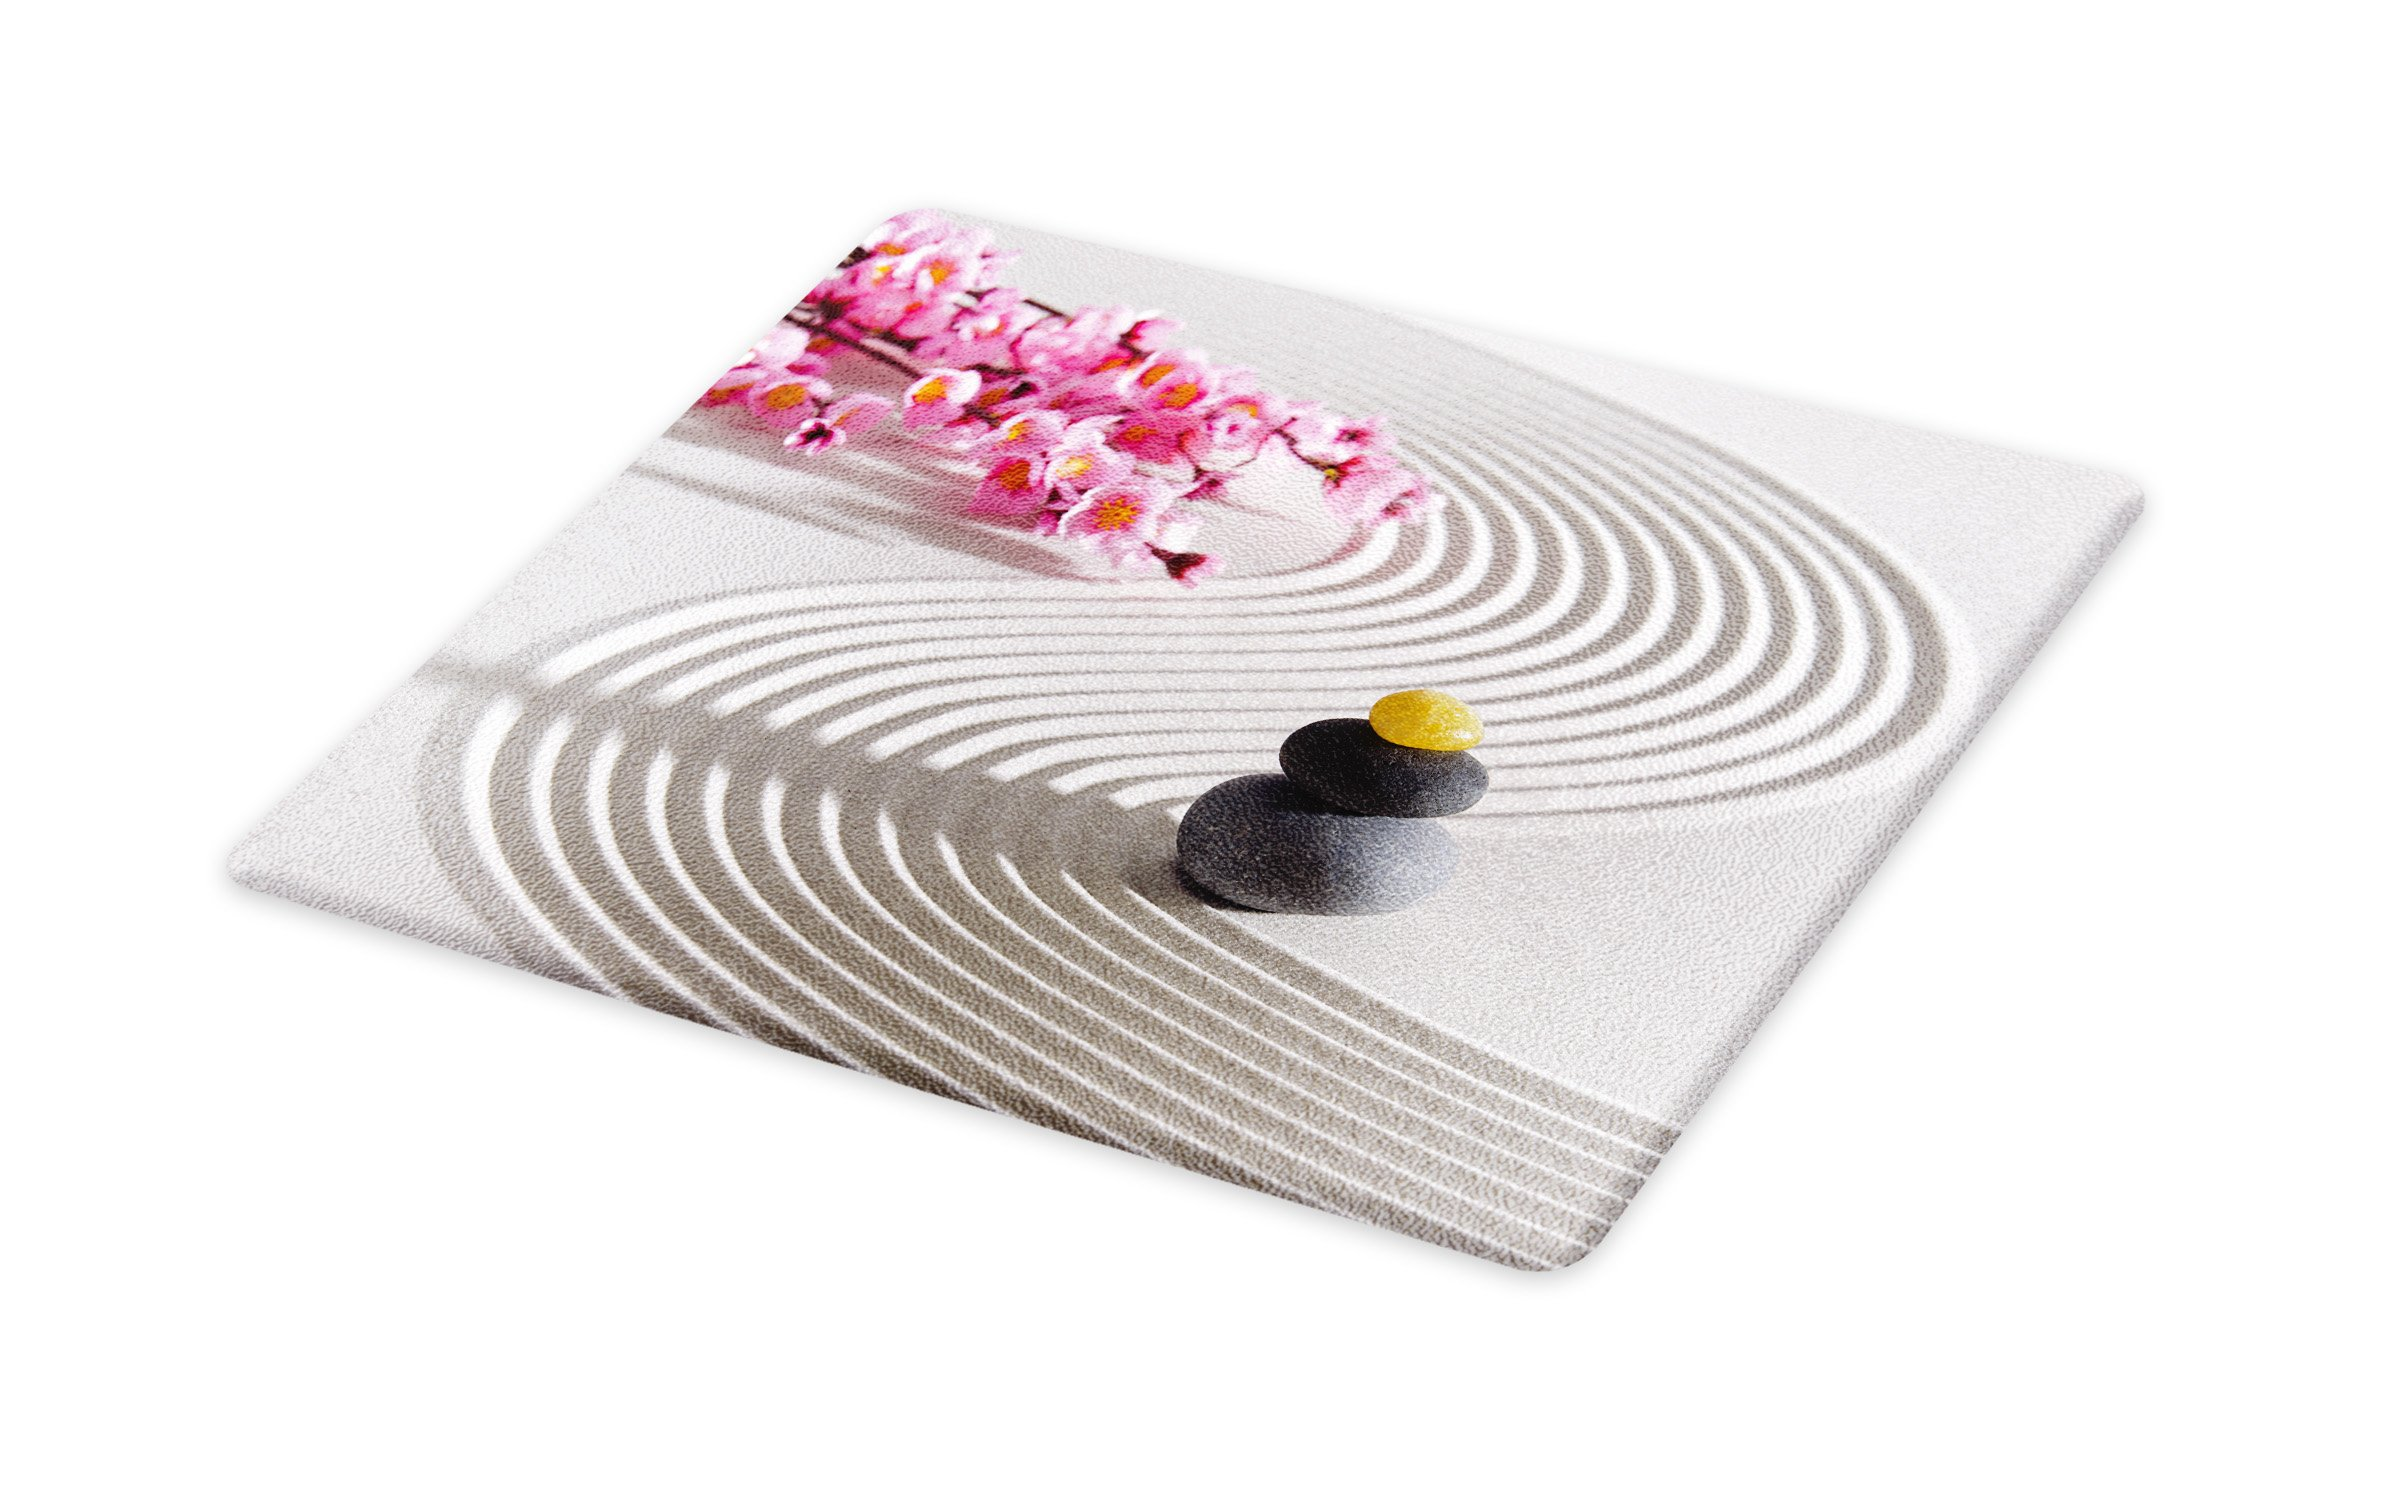 Lunarable Spa Cutting Board, Japanese Zen Stones of Meditation Sand with Orchids Relax Yoga Spirit Picture, Decorative Tempered Glass Cutting and Serving Board, Small Size, Pearl Pink Dimgrey